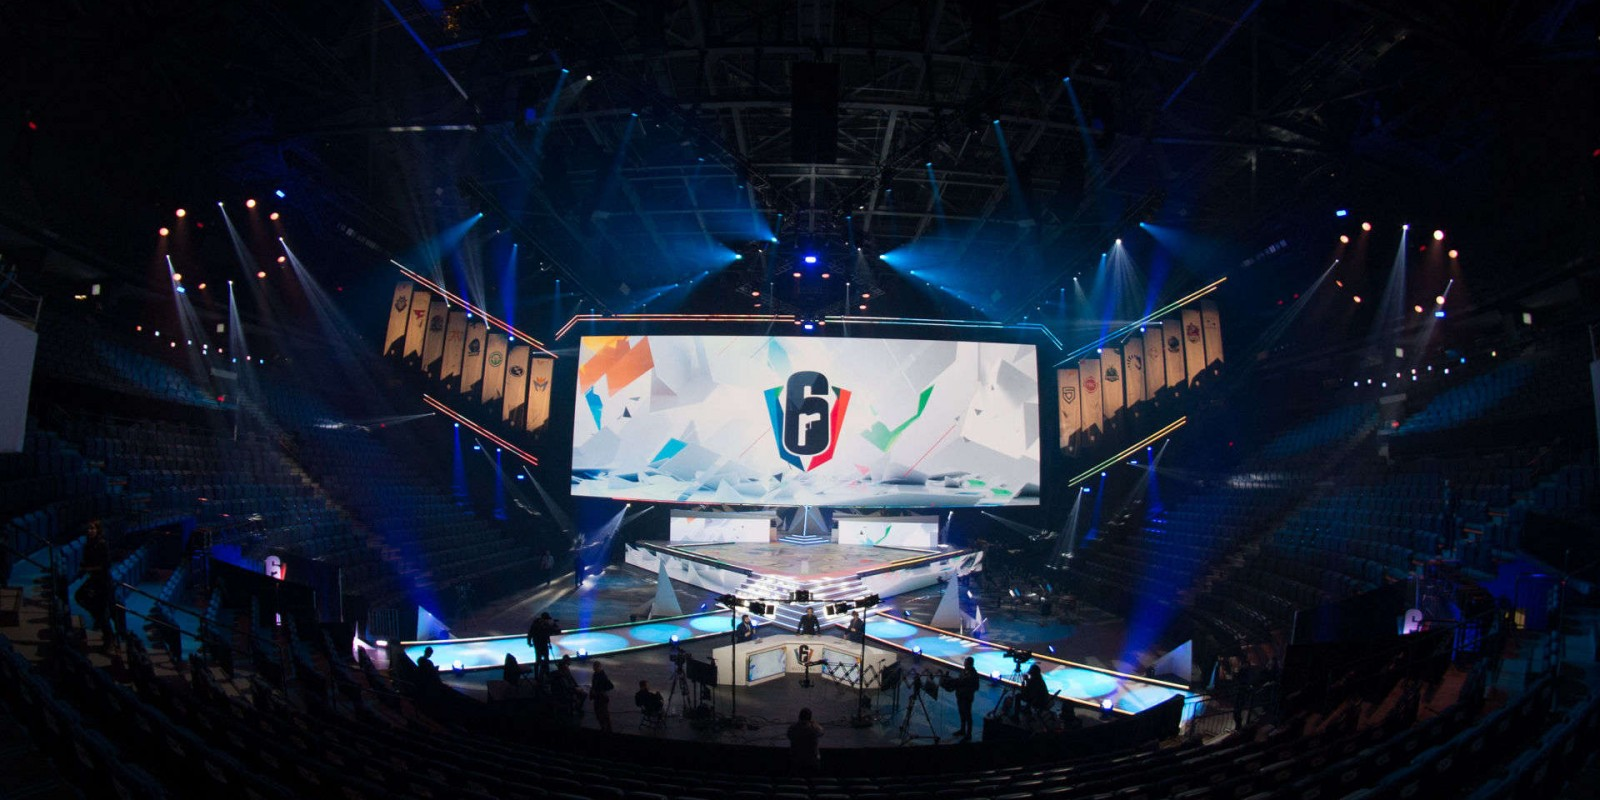 General photos of the Rainbow 6 Invitational arena at the Place Bell in Montreal, Canada.